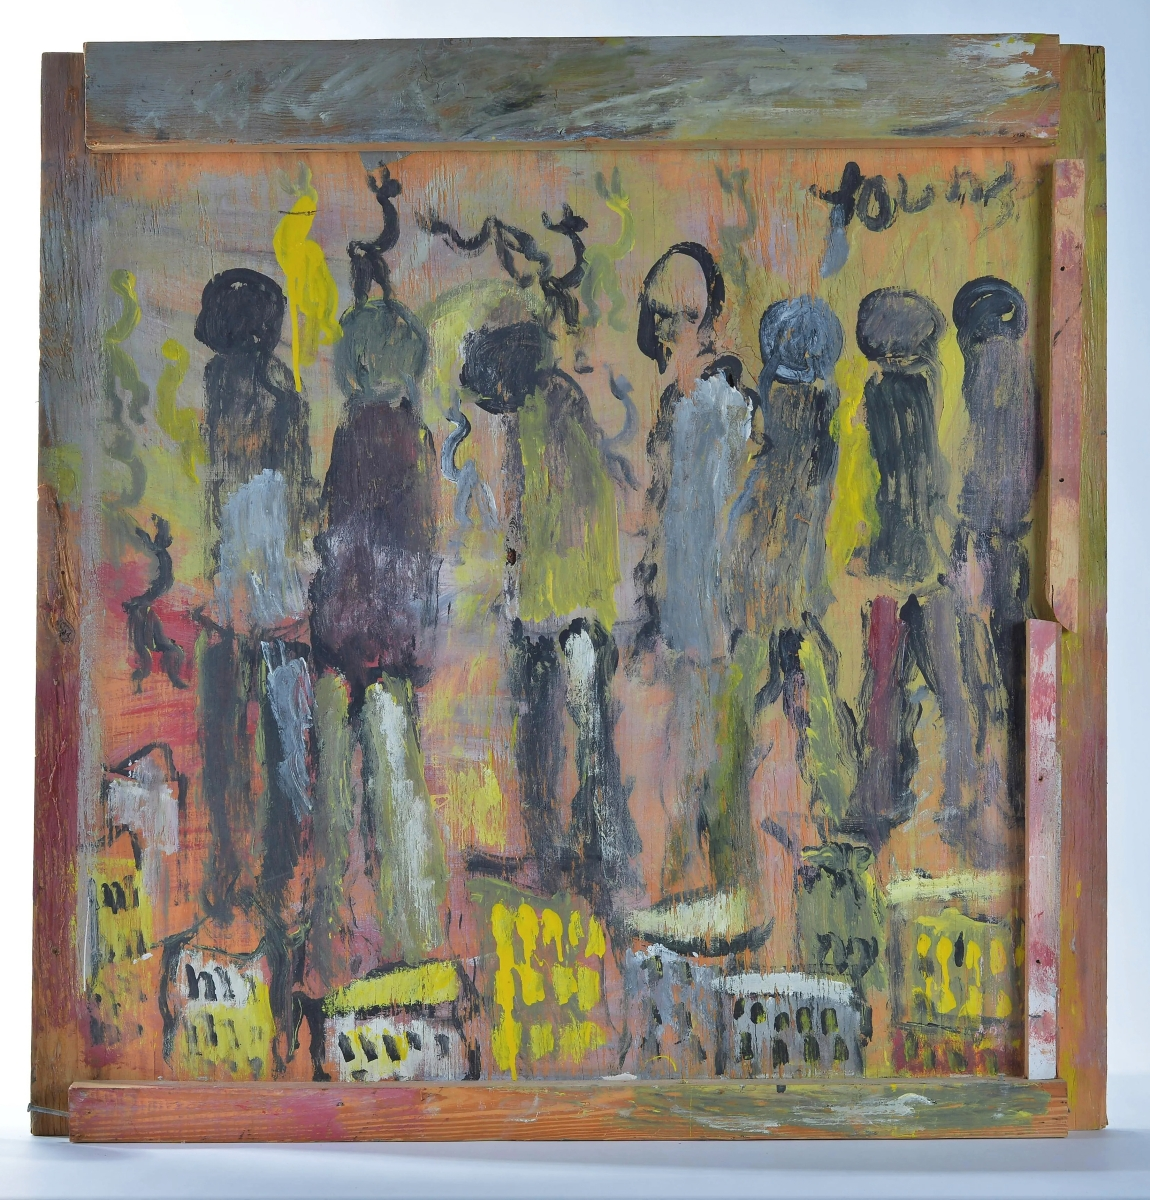 Forty-two artworks from Purvis Young were offered in this sale, consigned from two collections. Many were from the 1990s. This city scene led the pack at $3,690. Paint on plywood, 35½ by 35 inches.